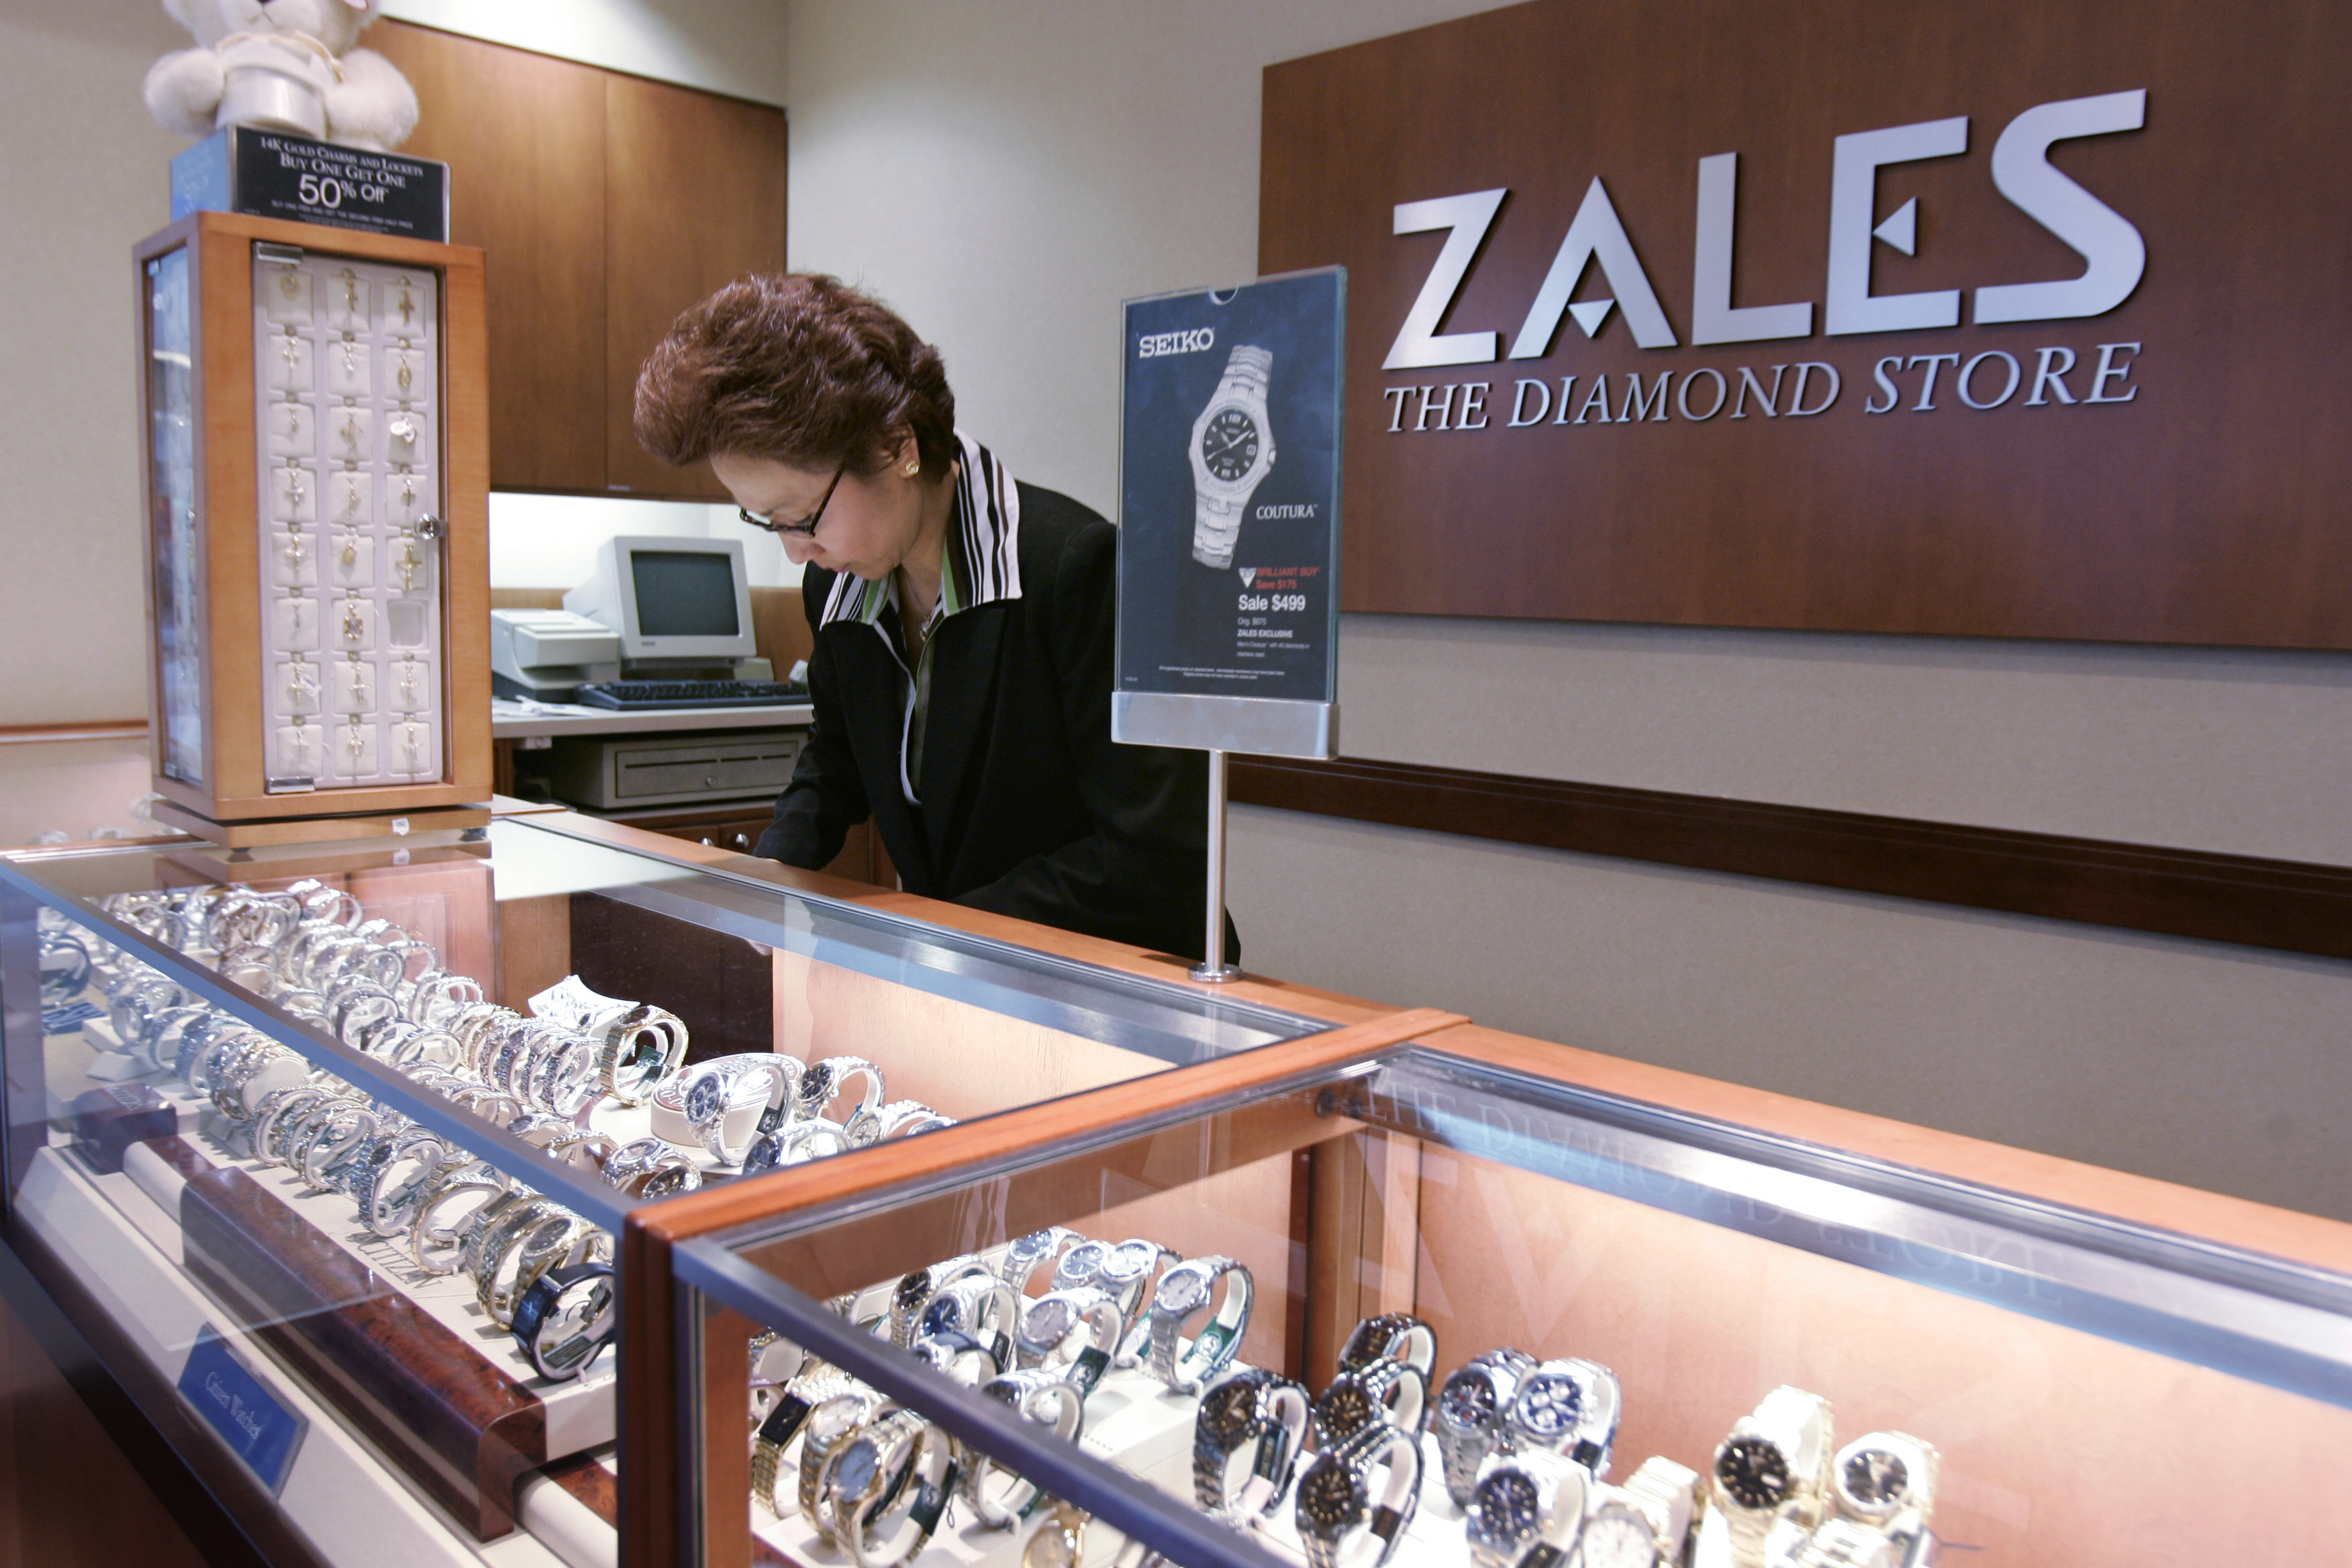 Zales, Signet Jewelers, Sterling Jewelers, Kay Jewelers, Jared, Jewelry, Mall Jewelry